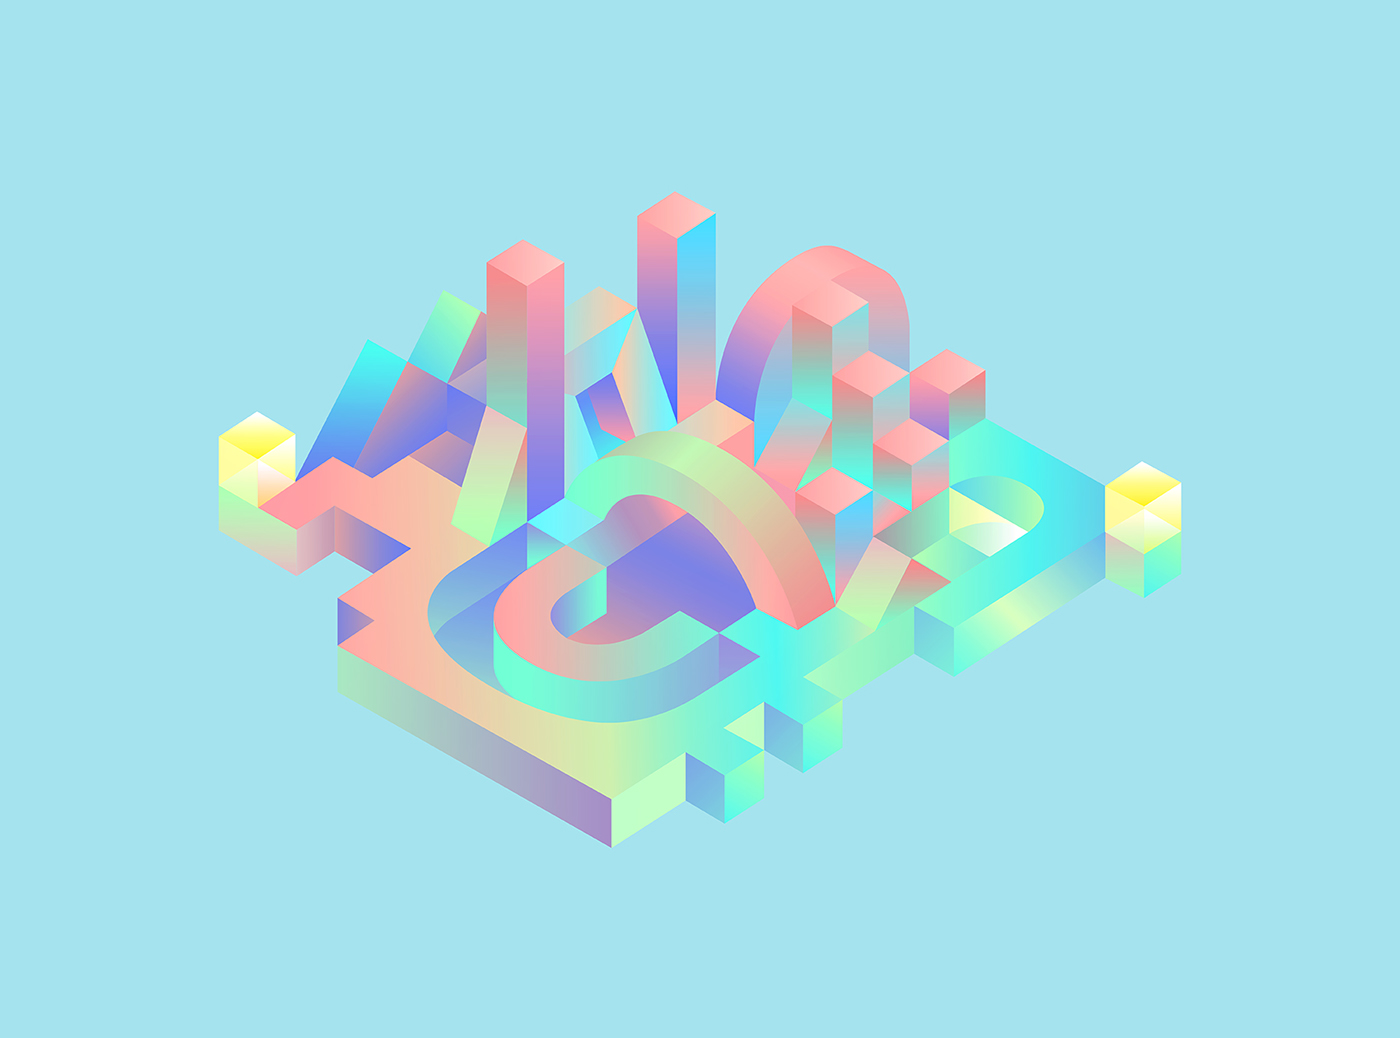 abstract geometric Isometric pastel vibrant Calligraphy   gradient cubes color digital